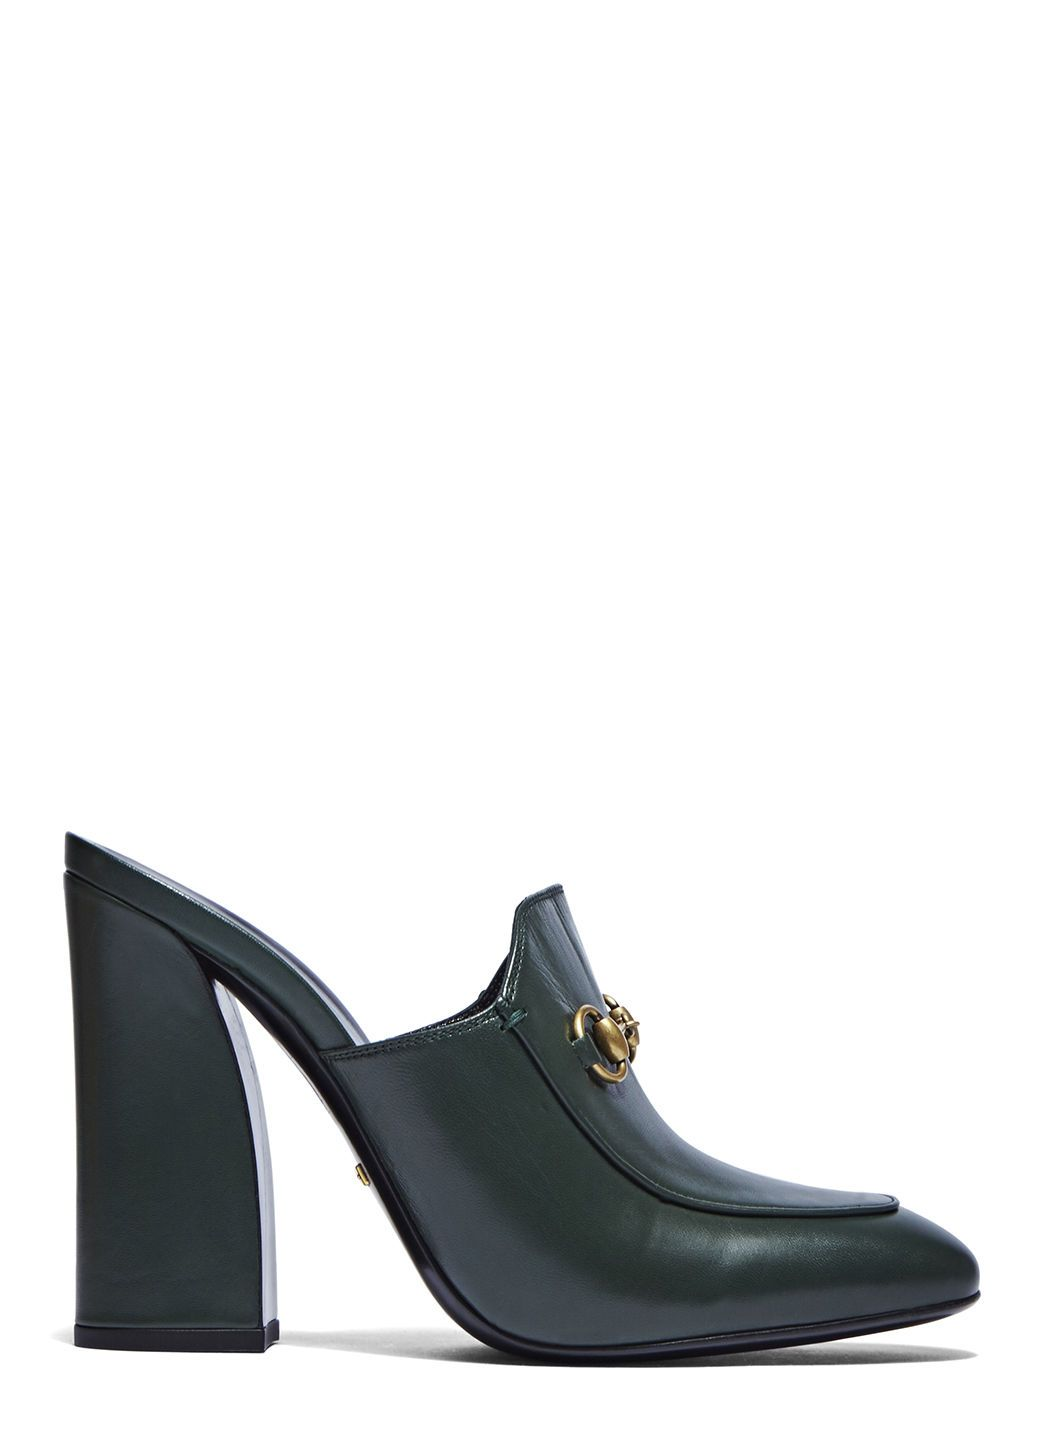 GUCCI Women S Heeled Loafer Mules In Green.  gucci  shoes ... 857934677d